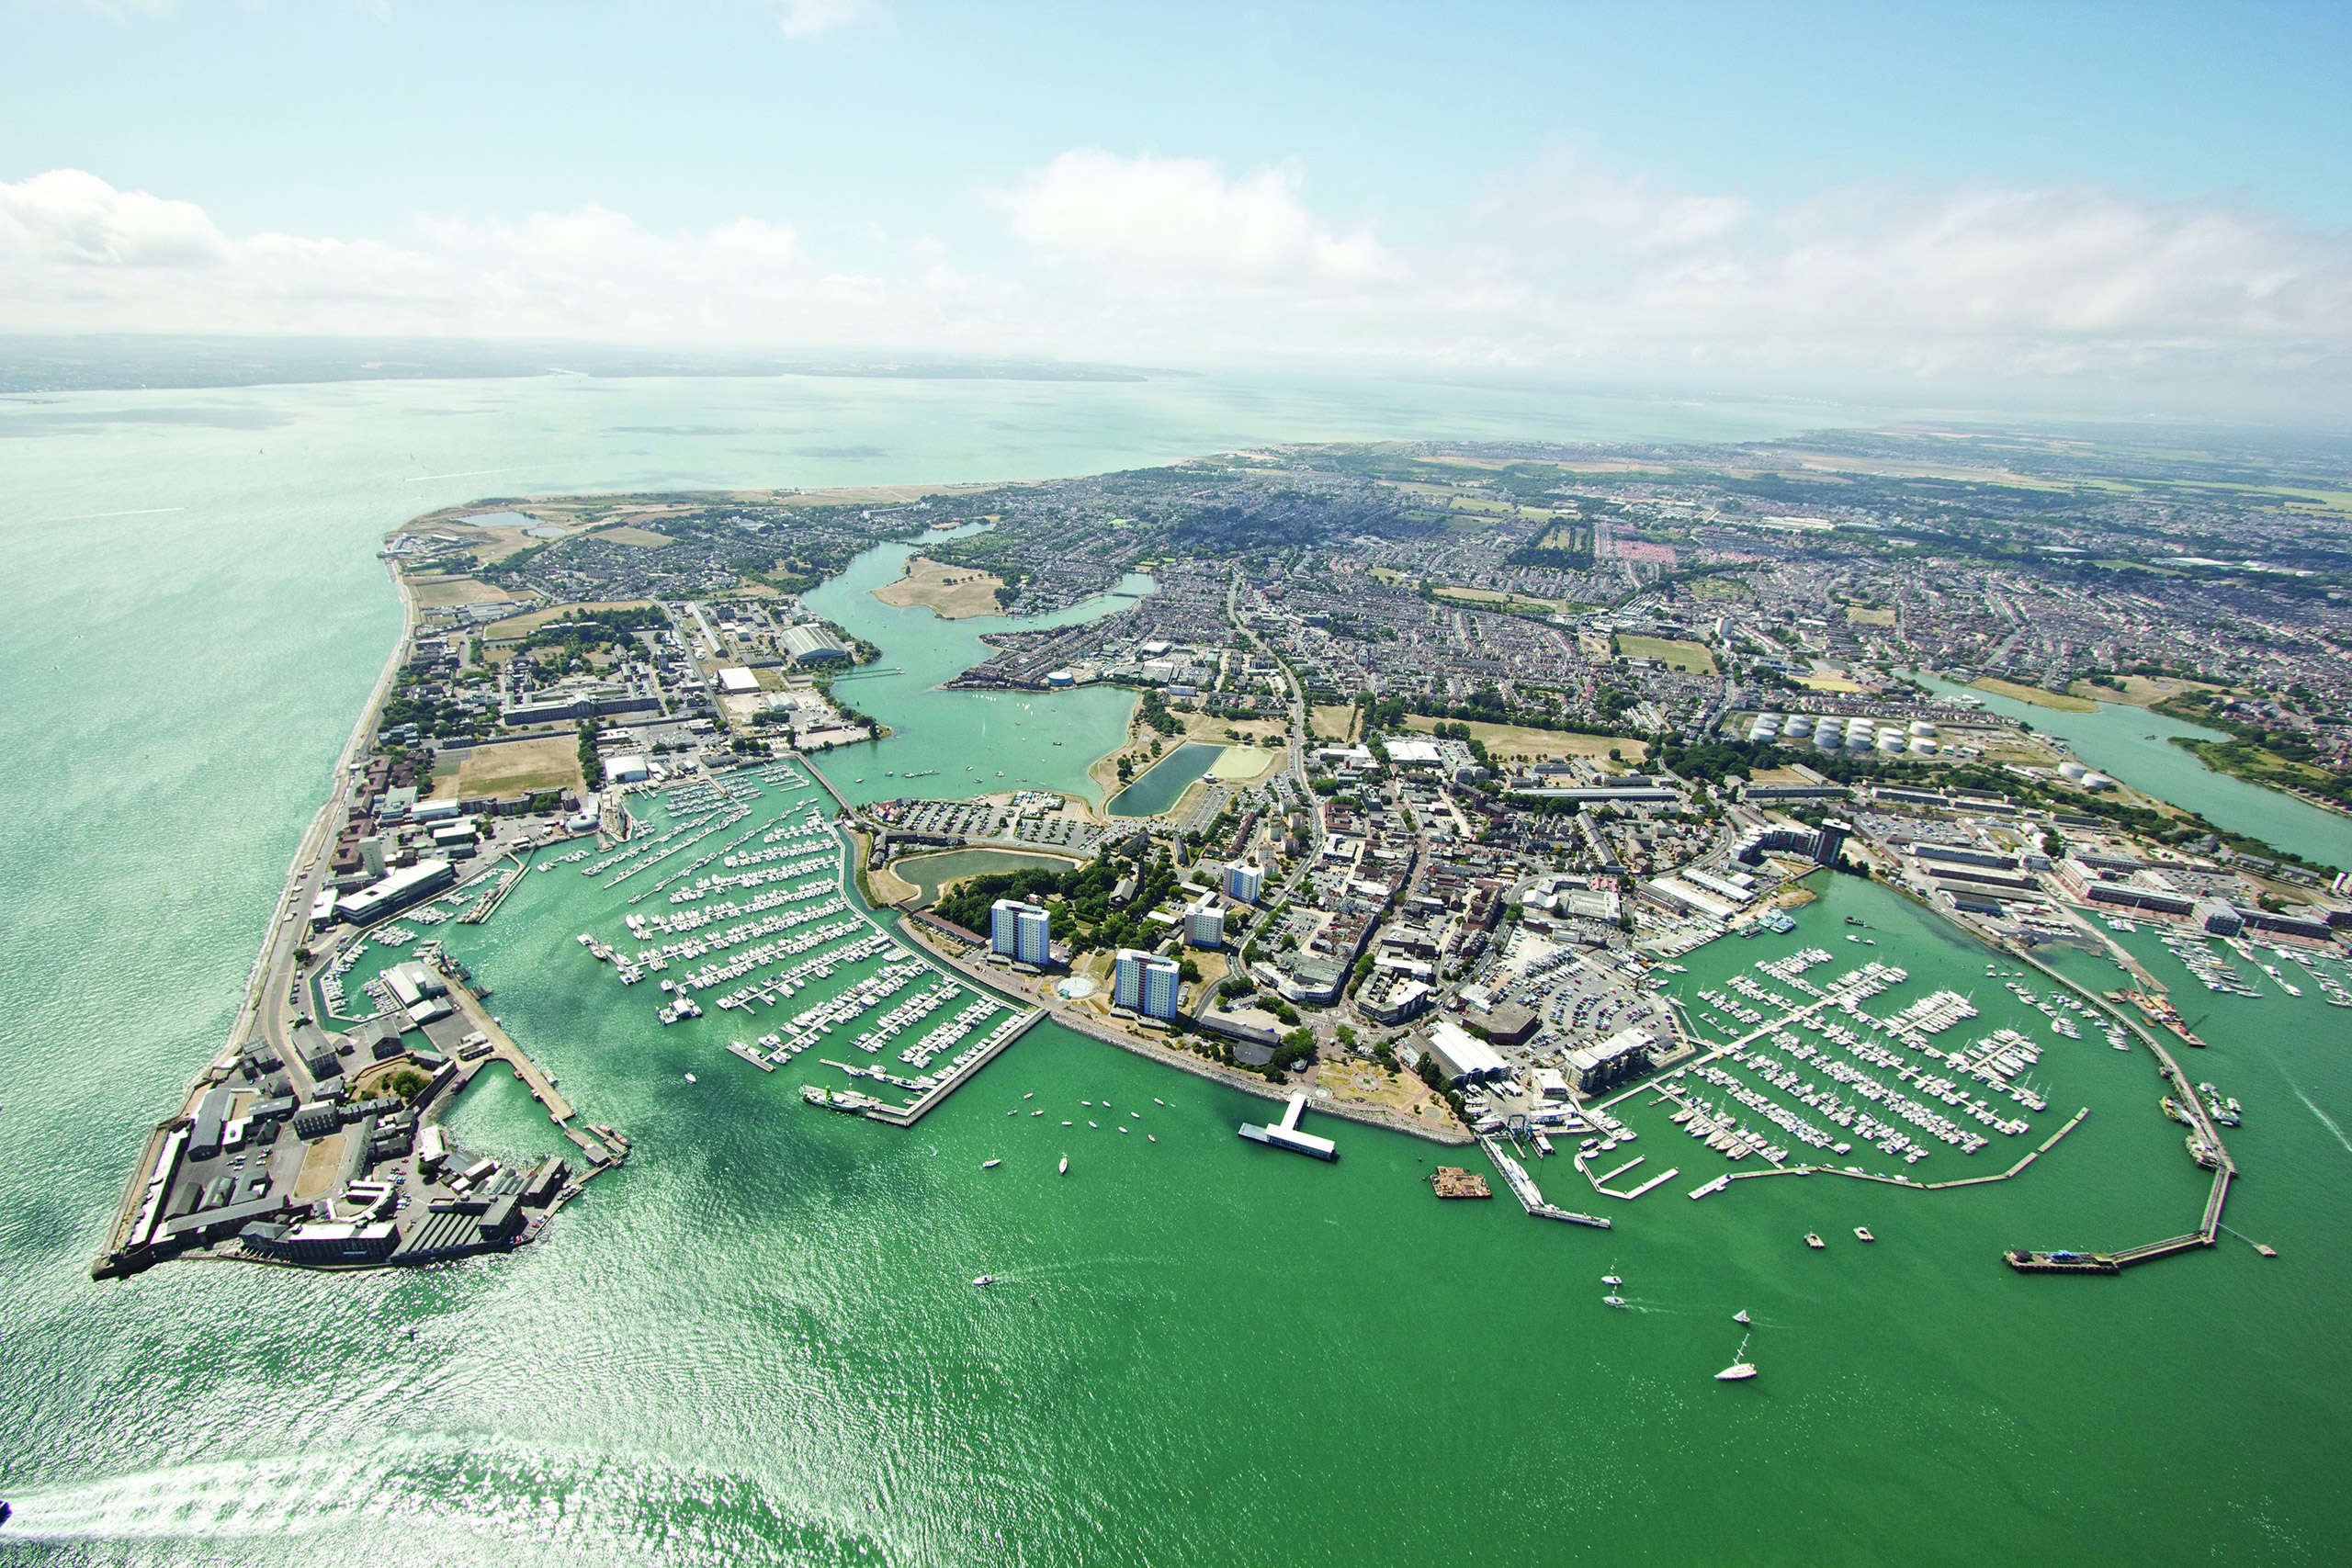 aerial view of Gosport waterfront